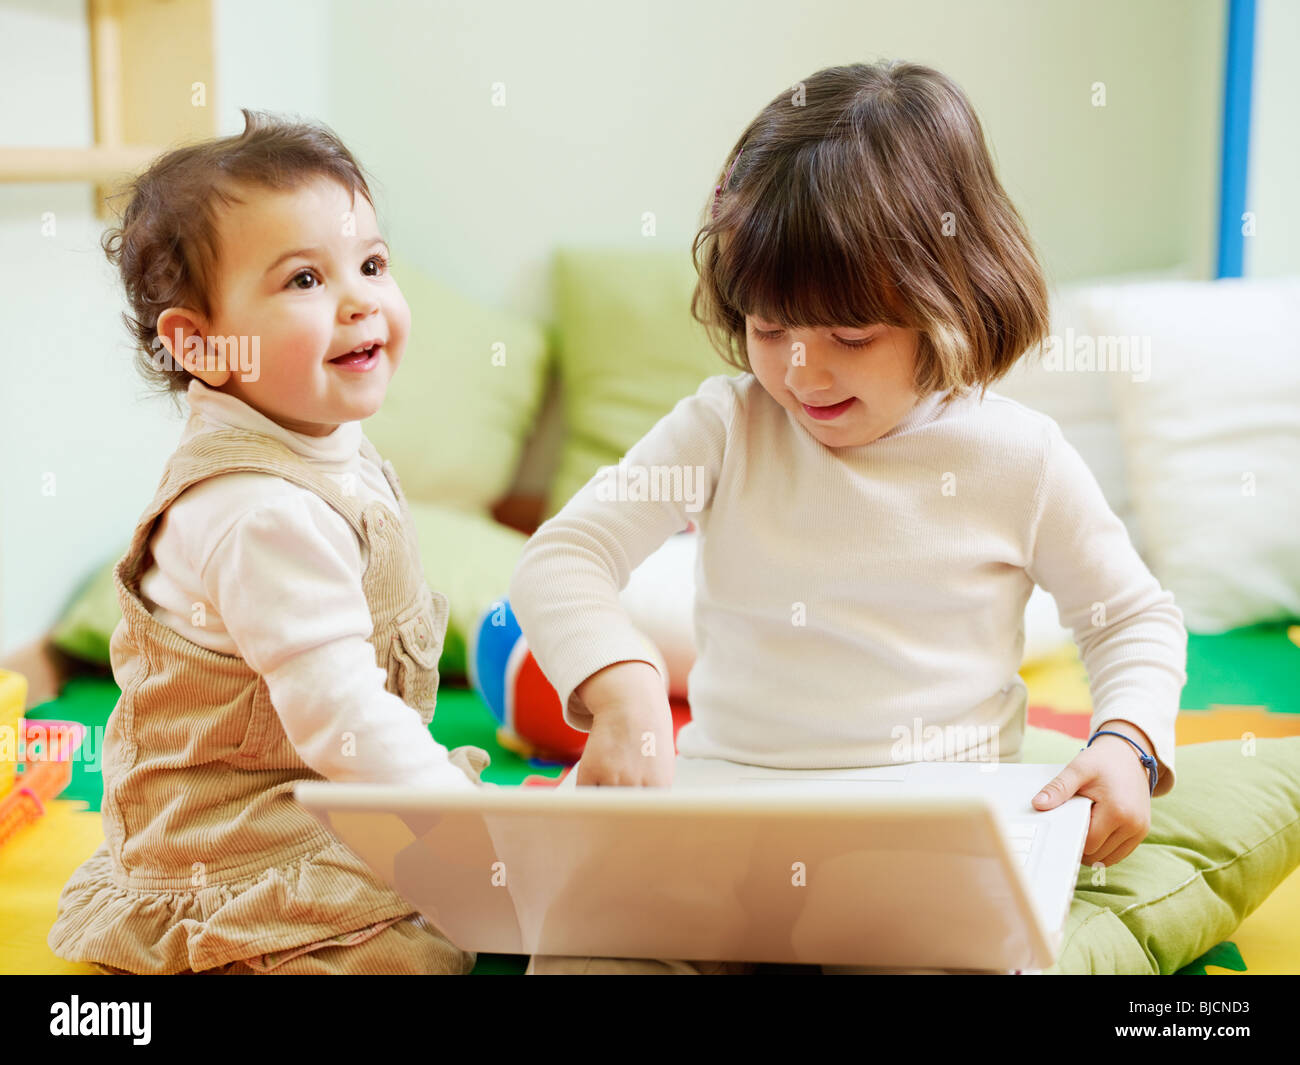 female toddler and 2-3 years old girl playing with pc in kindergarten. Horizontal shape - Stock Image